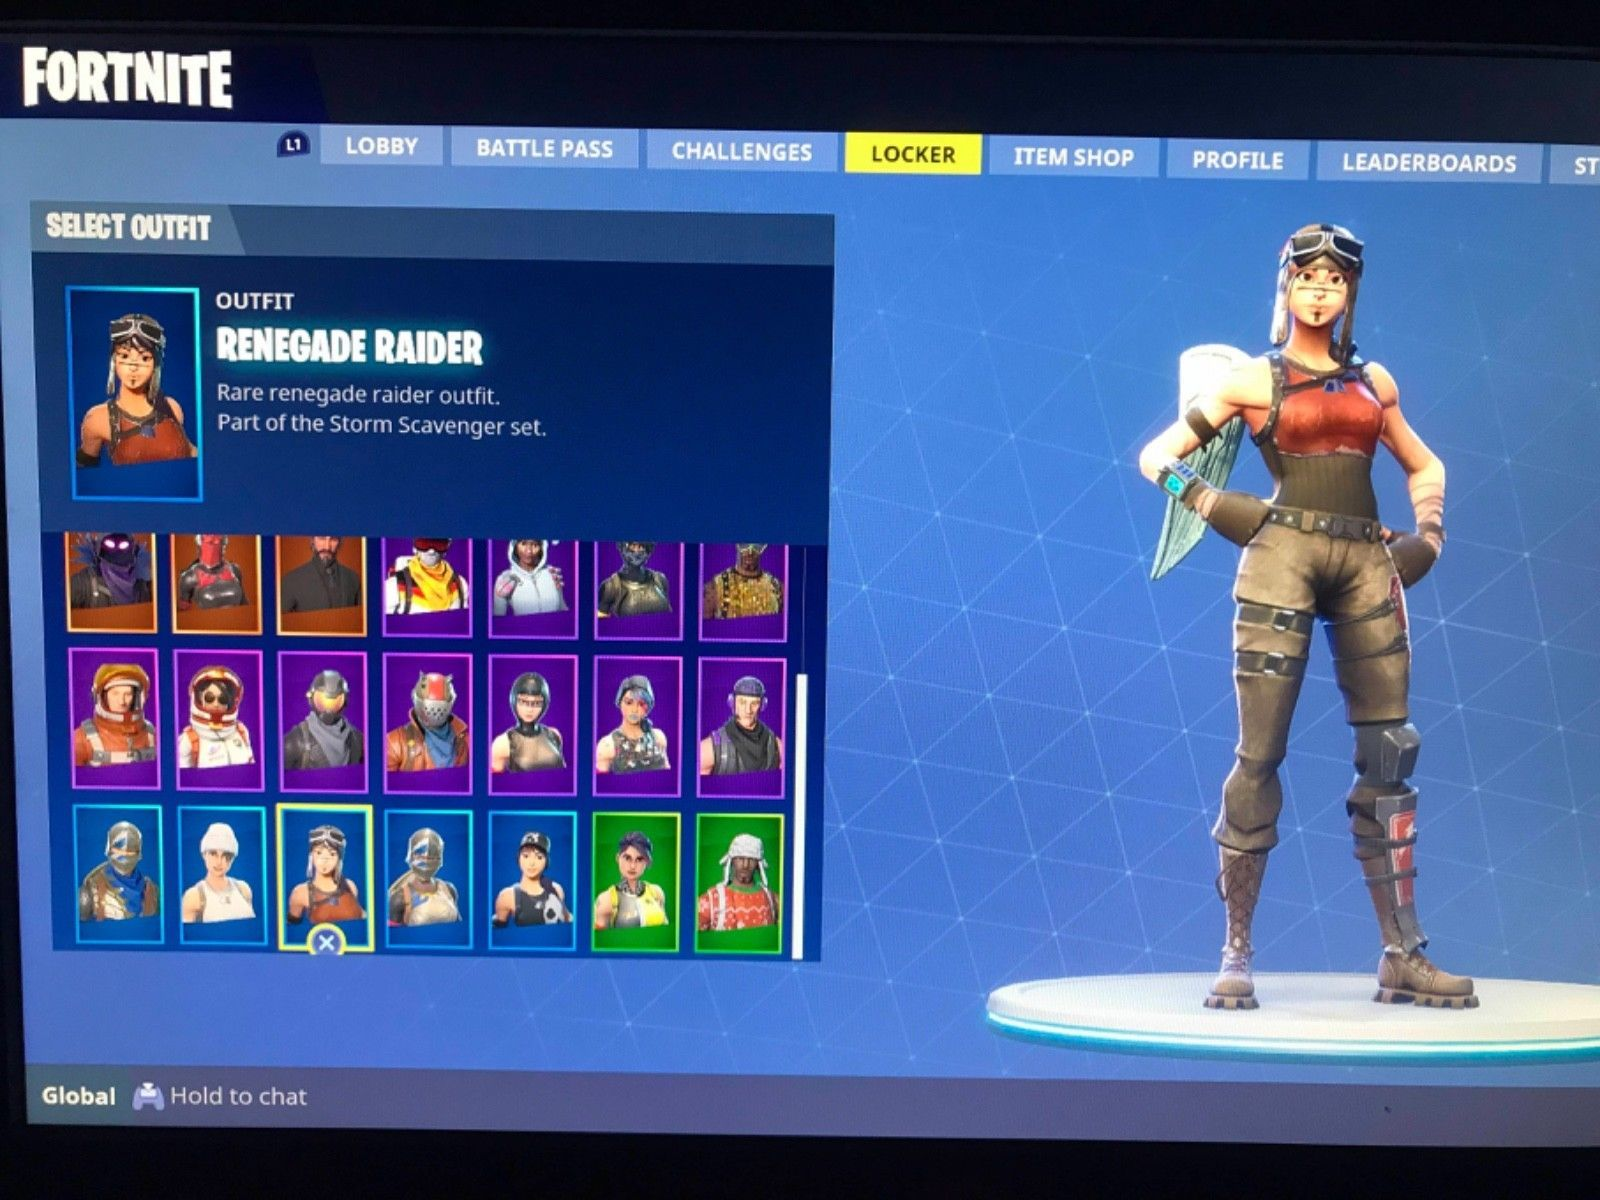 Fortnite Inactive Account - Year of Clean Water